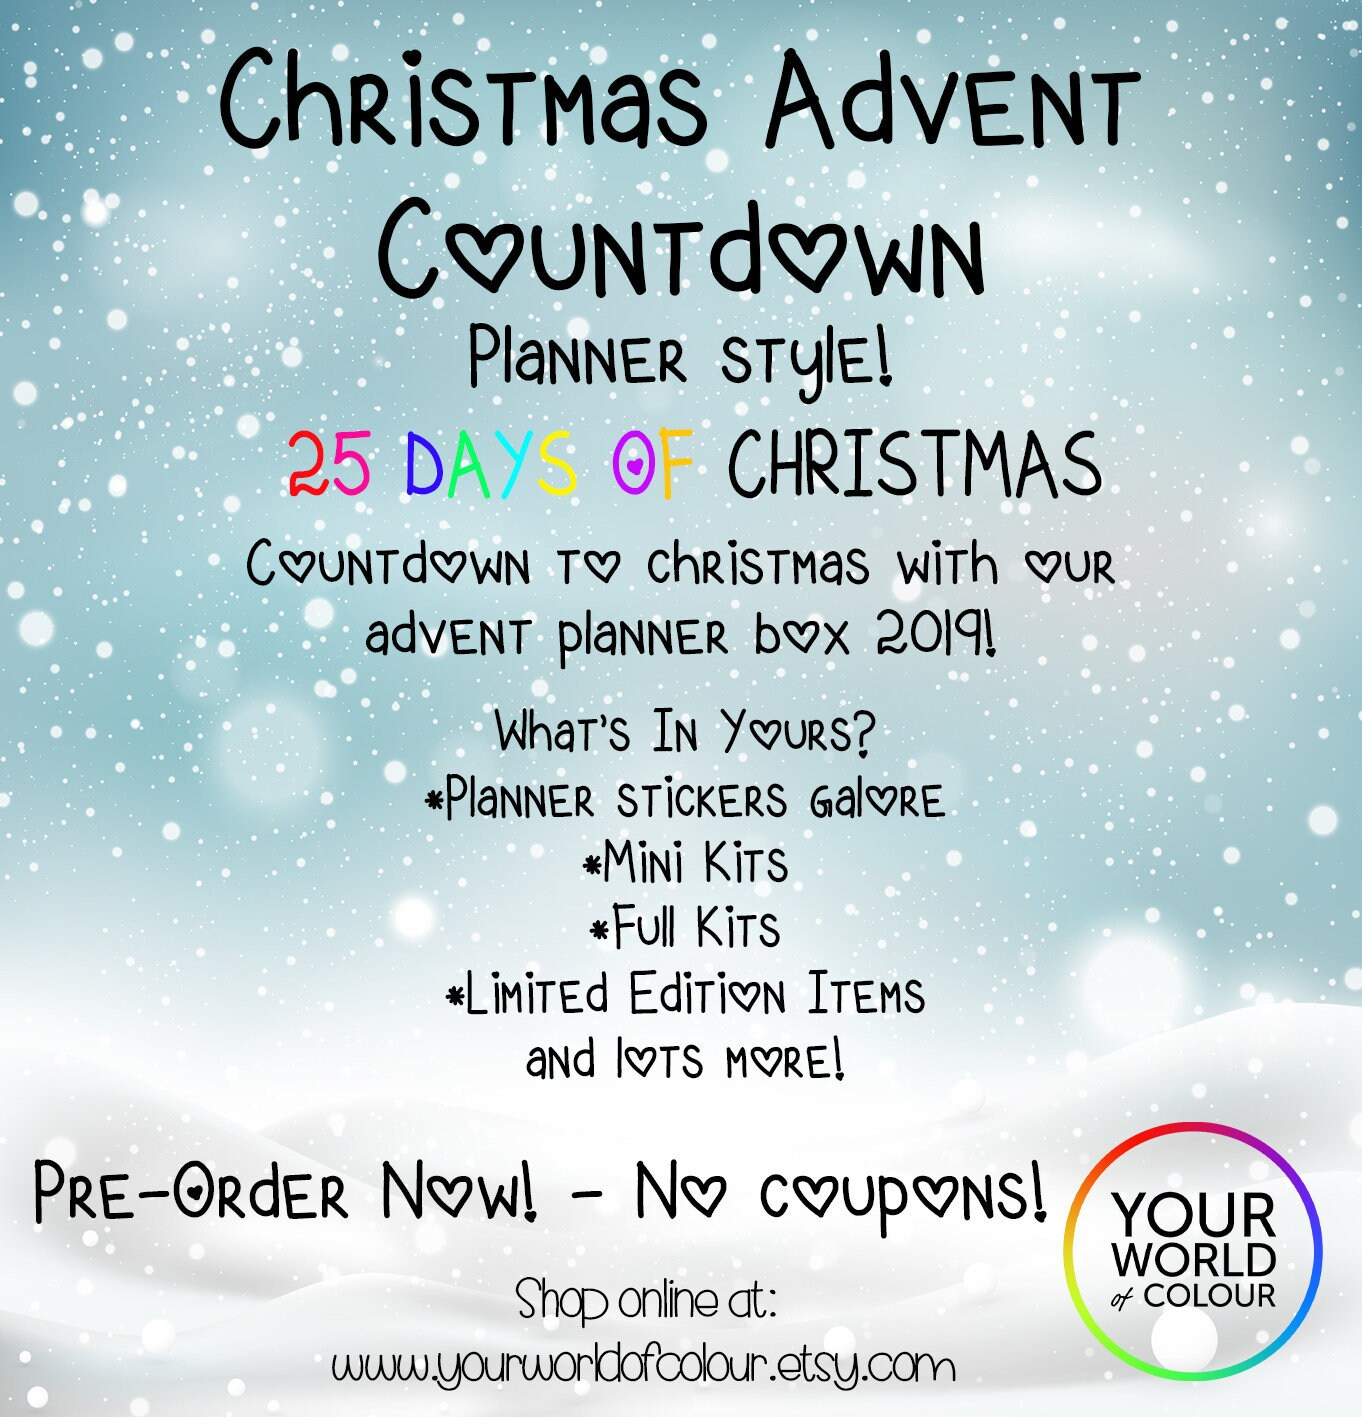 Countdown To 25 Days Of Christmas 2019.Ywoc 25 Days Of Christmas Advent Calendar Box Planner Stickers Mini Kits Full Kits Limited Ed Xmas Countdown No Coupons